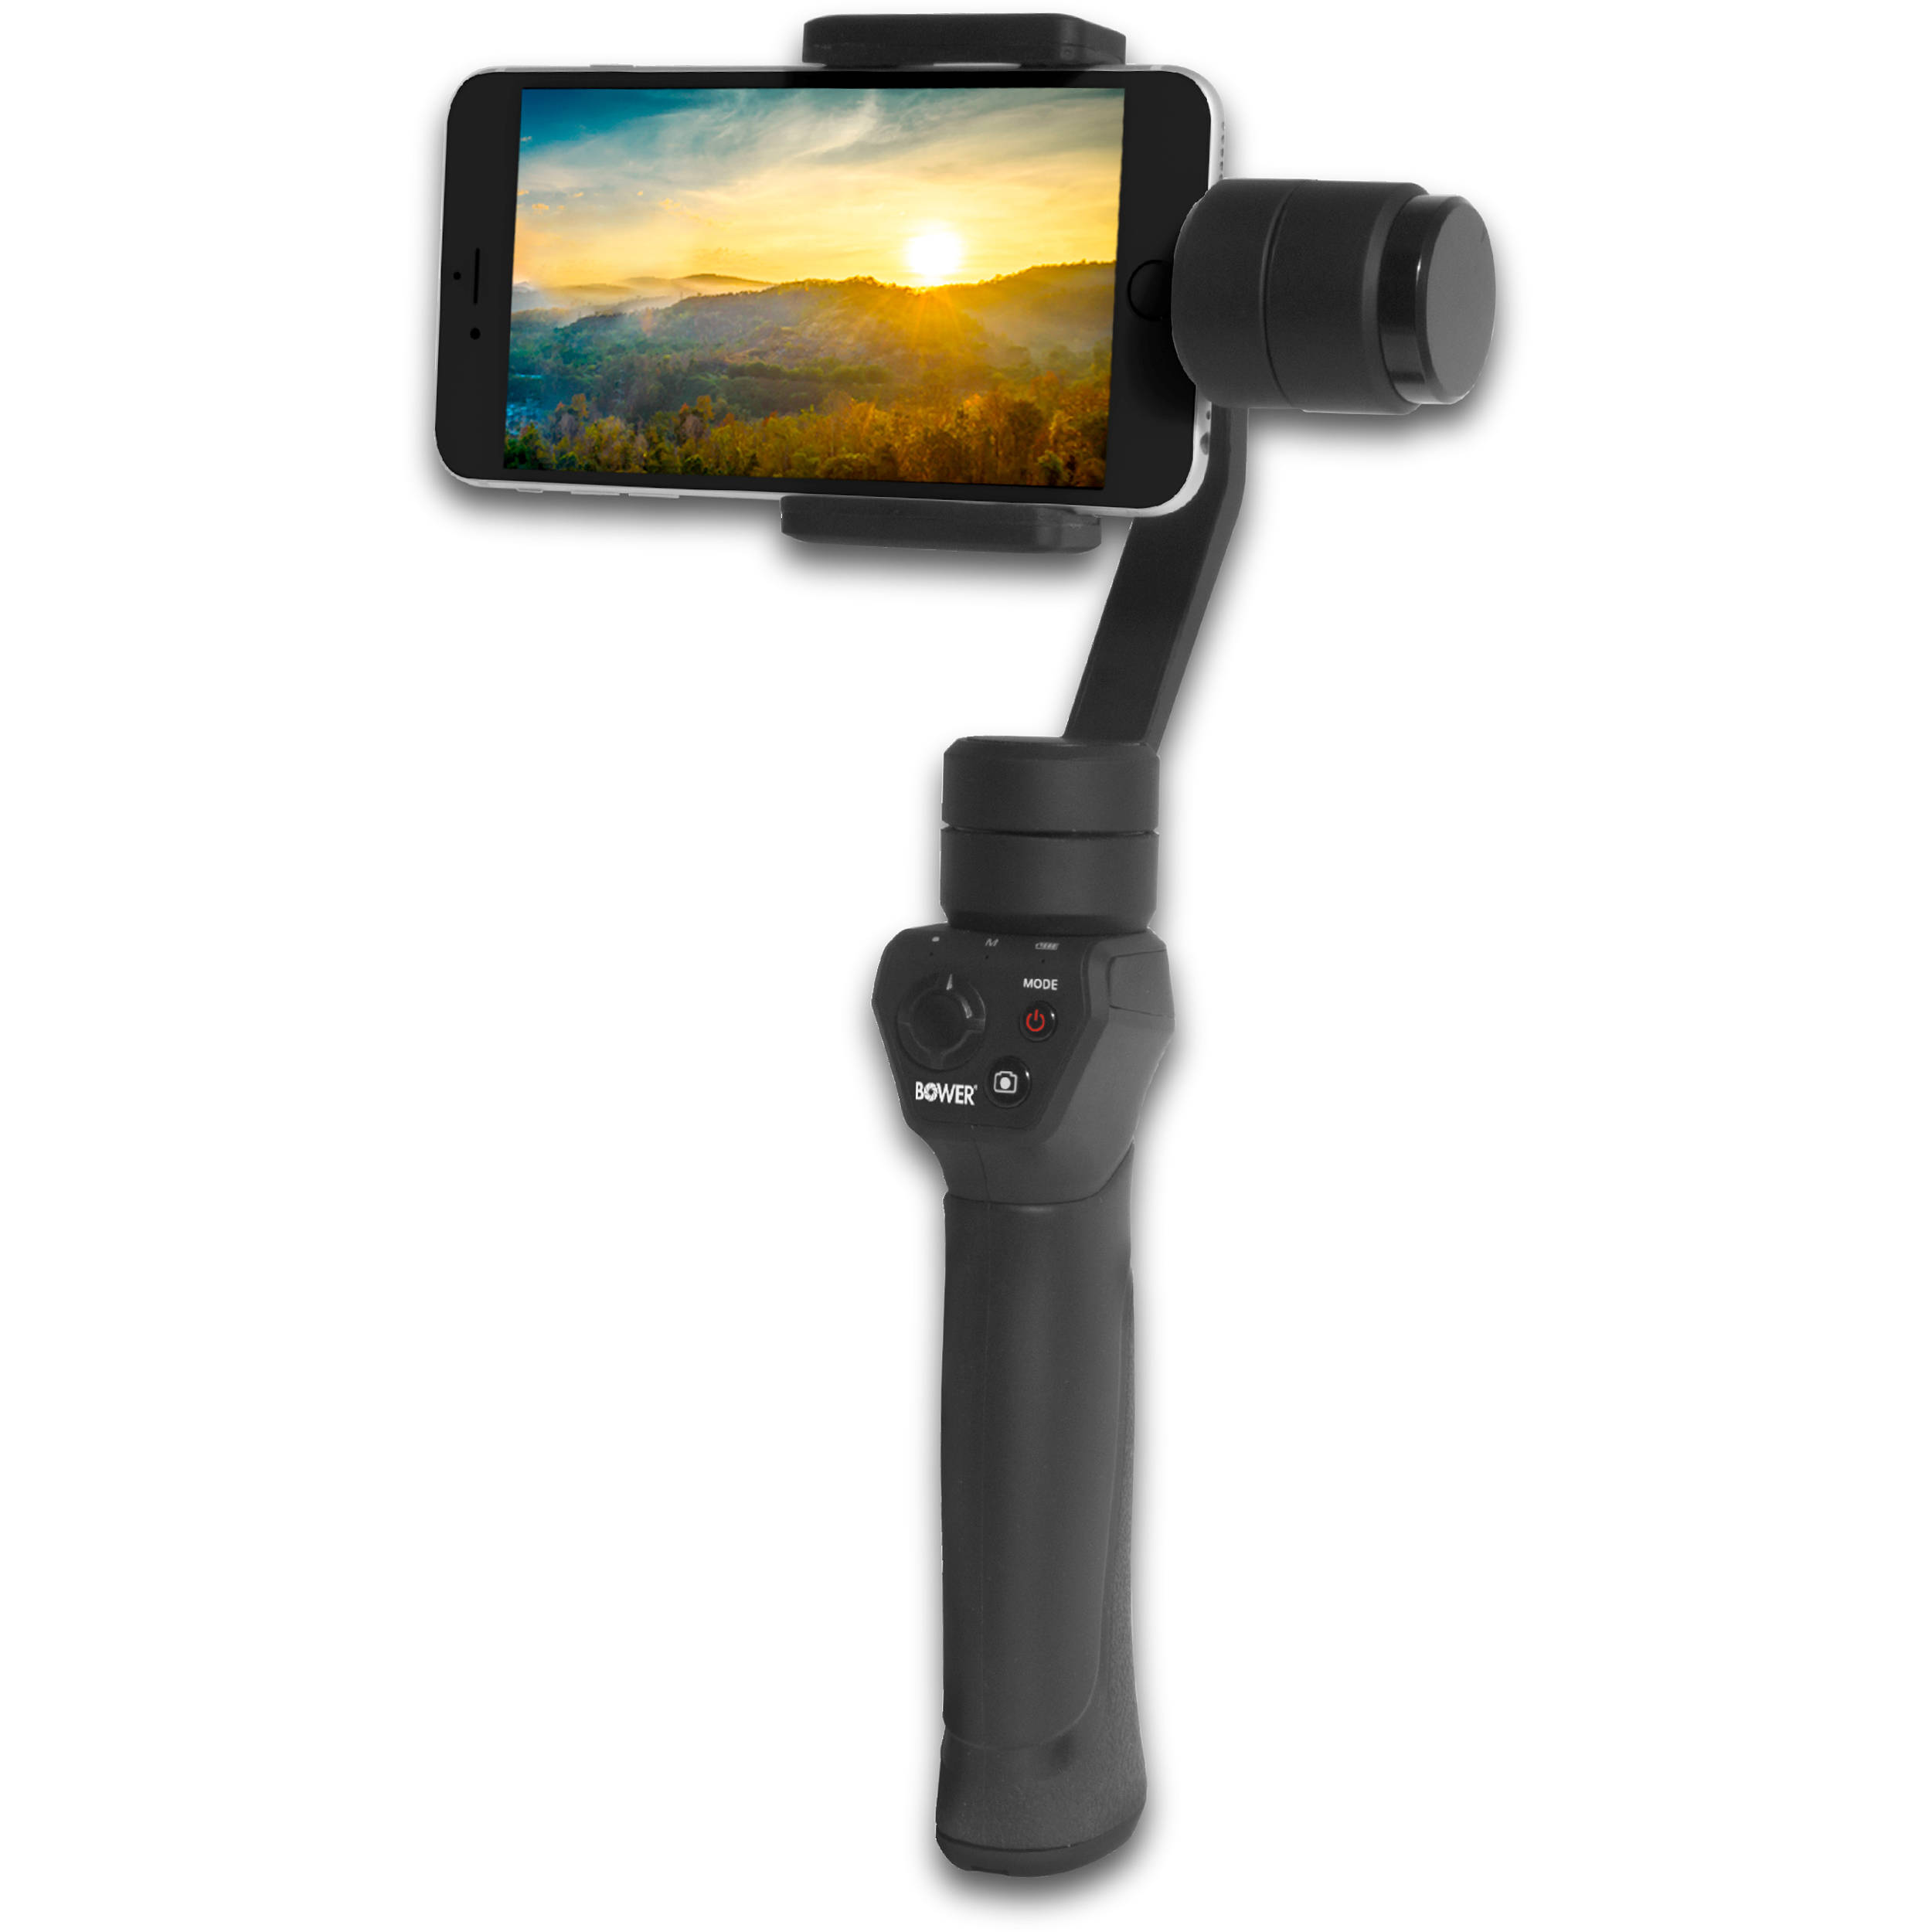 Energizer Smart Photography Series Bluetooth 3-Axis Gimbal Video Stabilizer